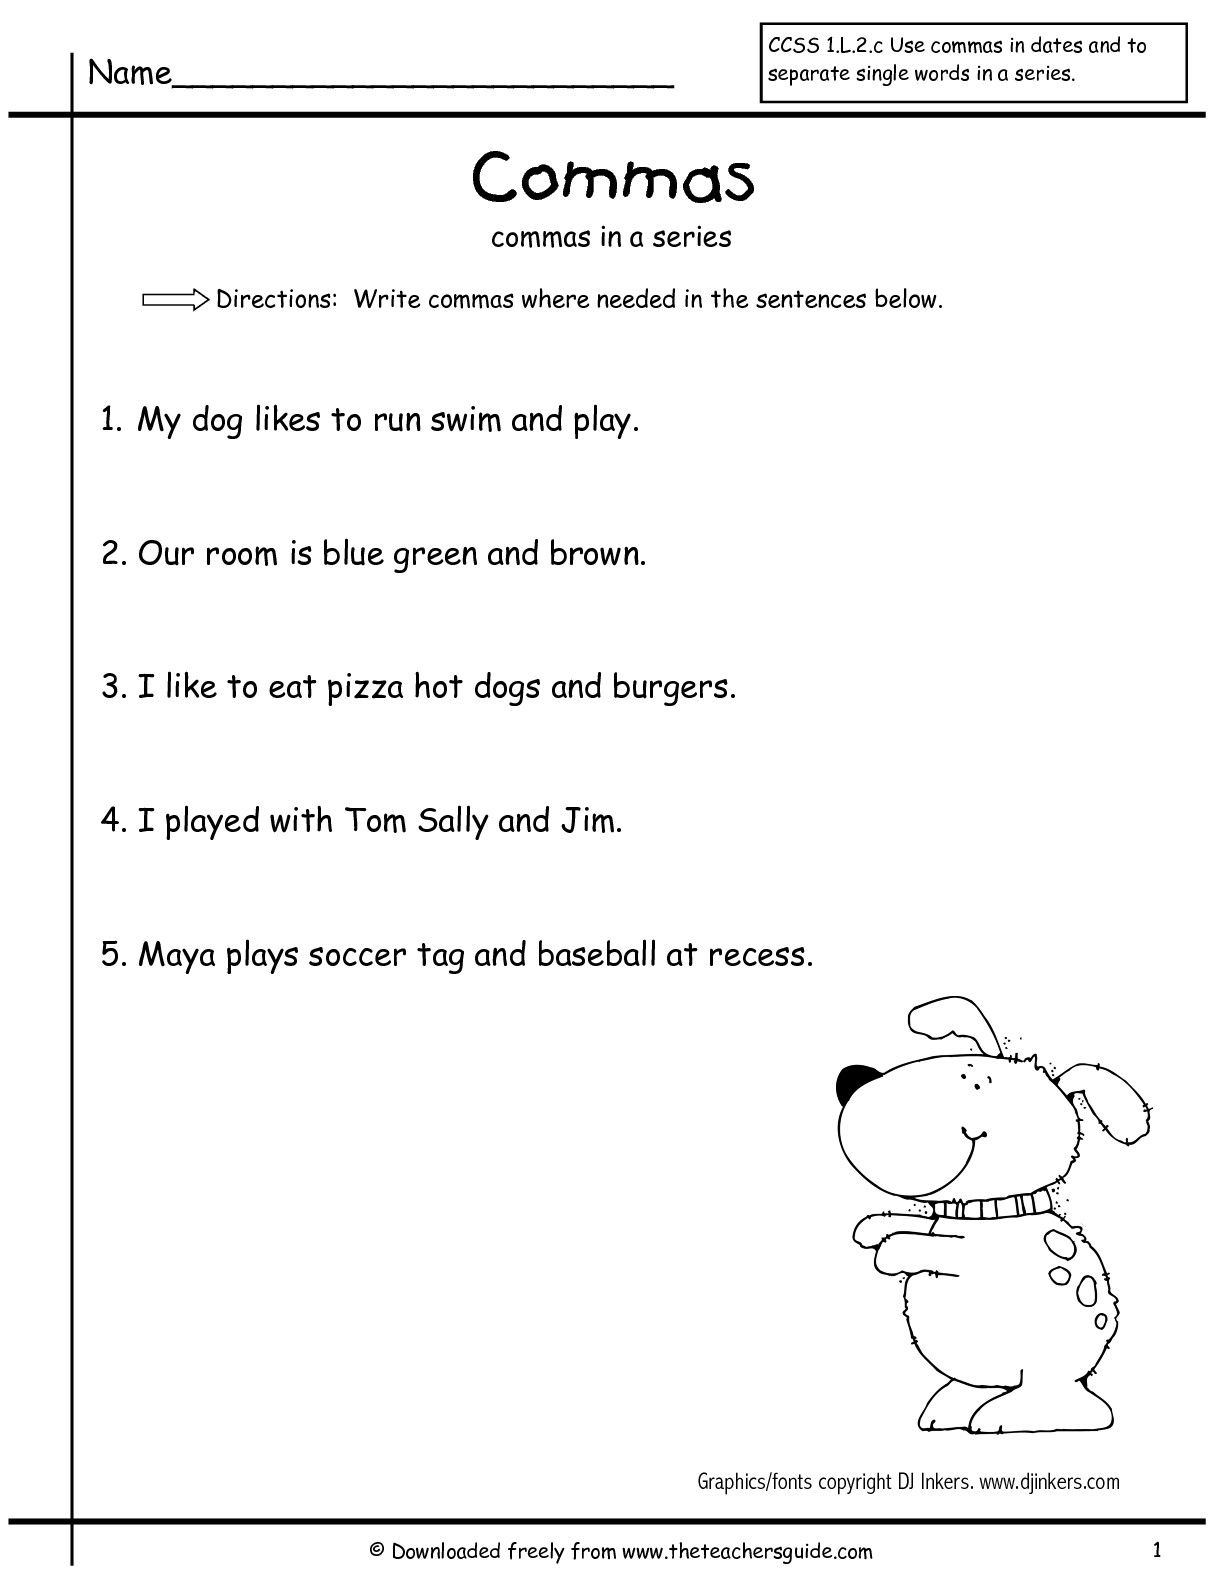 worksheet Comma Practice Worksheet commas in a series grammar pinterest worksheets punctuation first grade comma